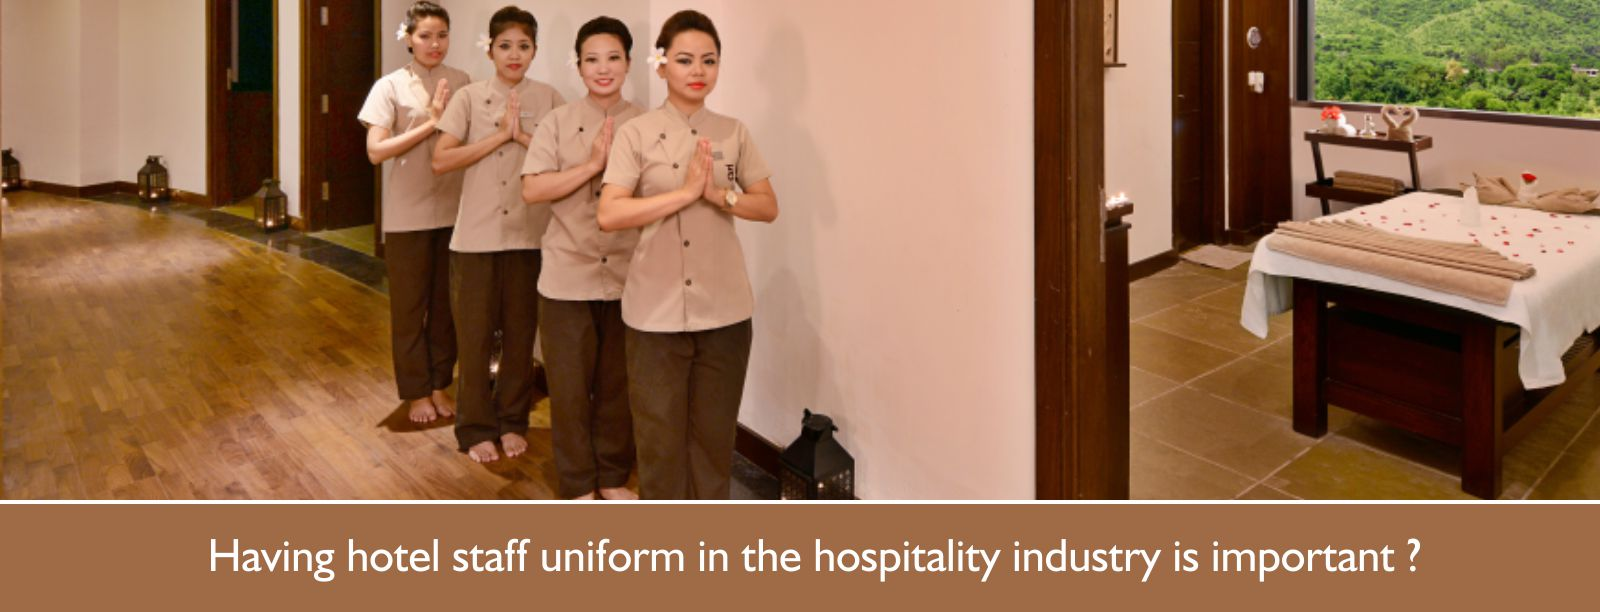 10 Important Reasons for Having Hotel staff Uniforms in the hospitality industry